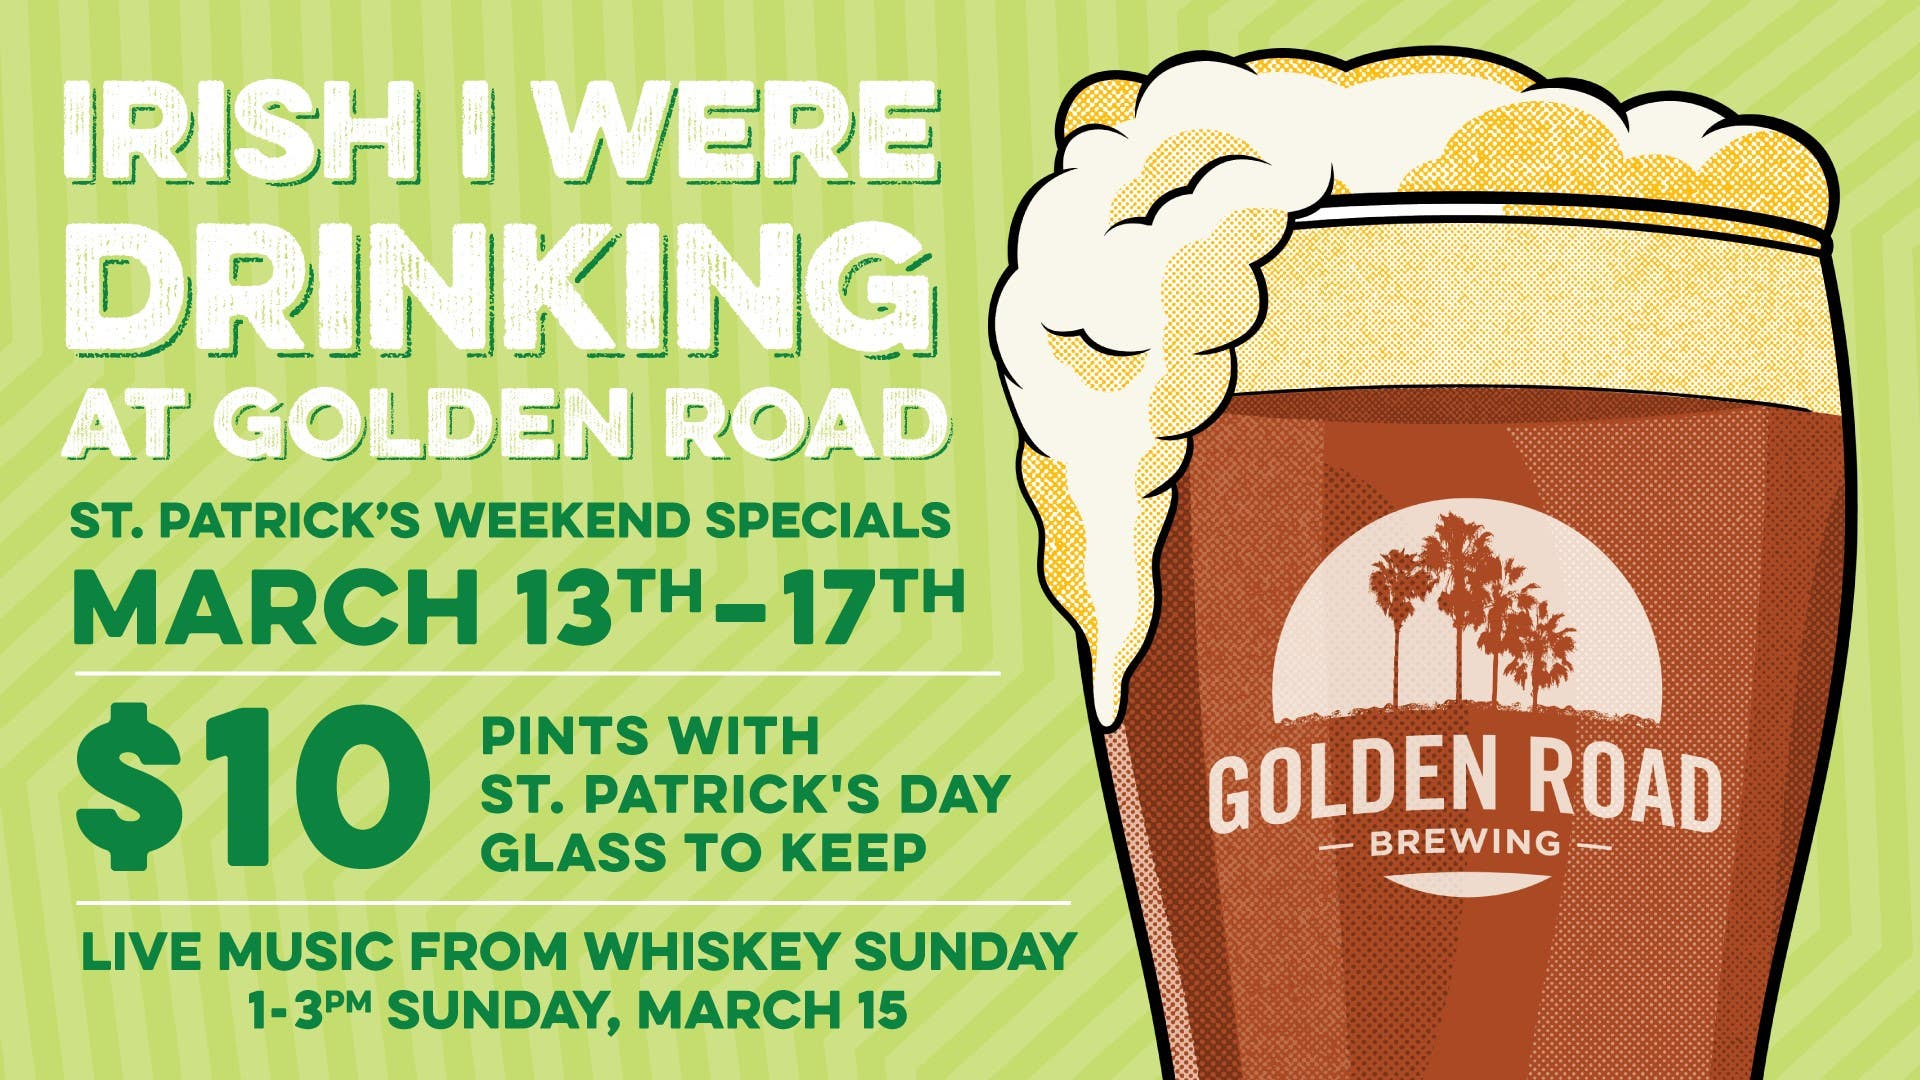 Golden Road Brewing St. Patrick's Day at Grand Central Market